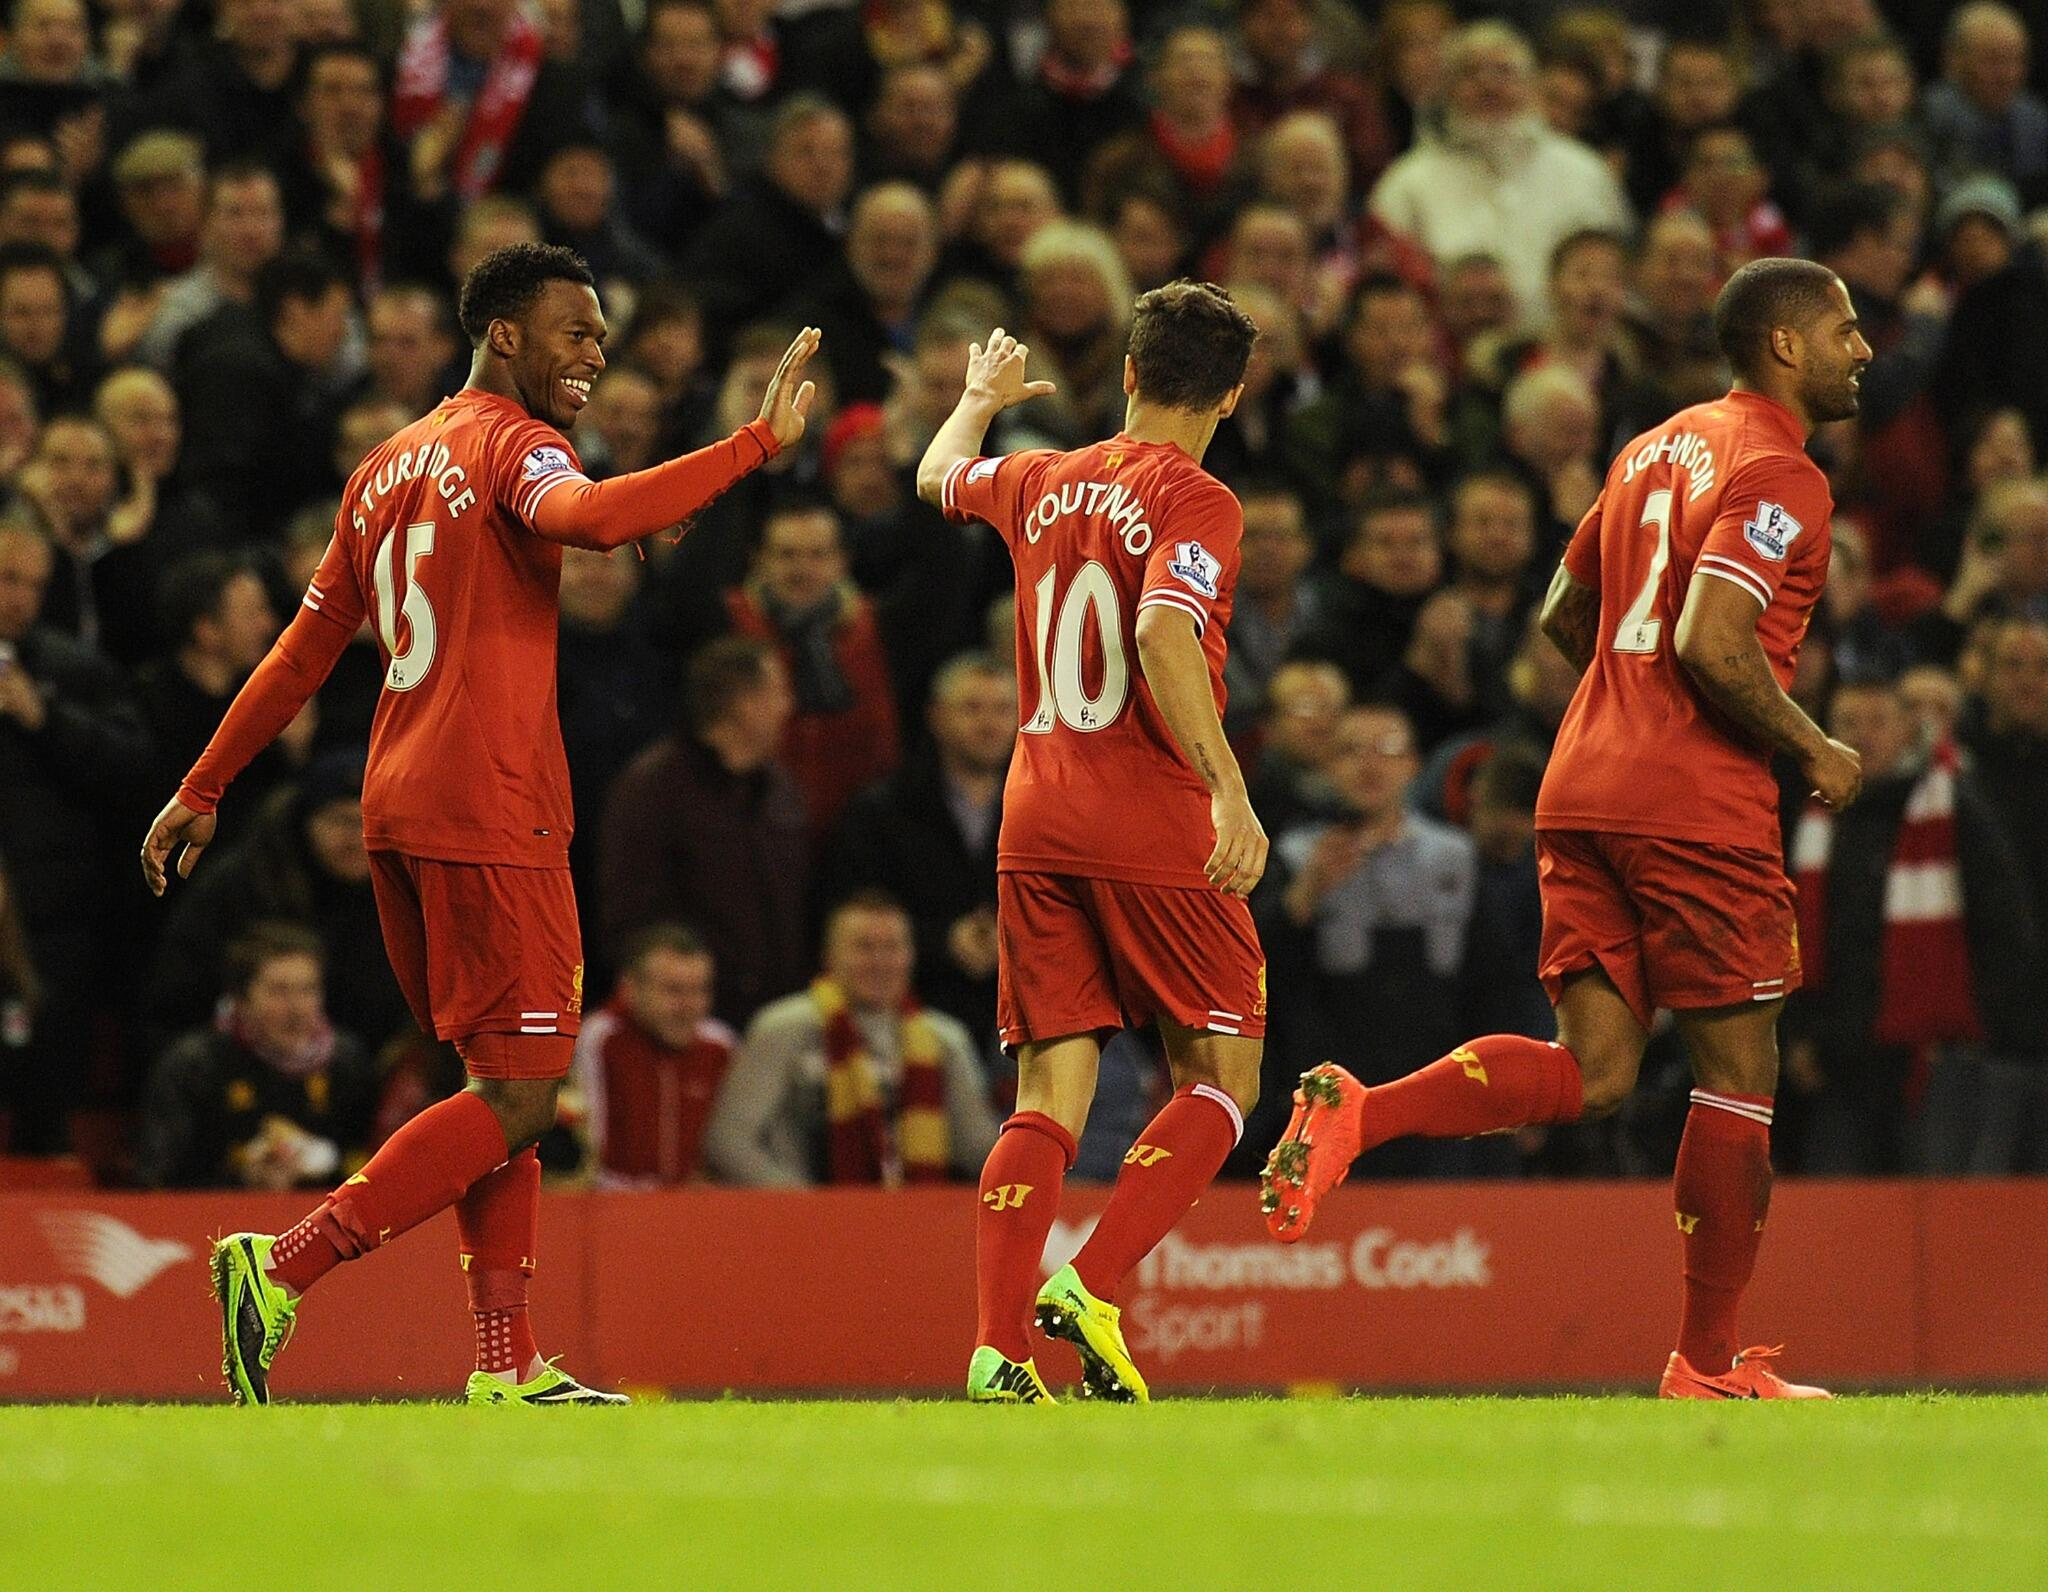 Retweet if @Phil_Coutinho was your #LFC Man of the Match against Sunderland… http://t.co/6ZNWvRJzUF